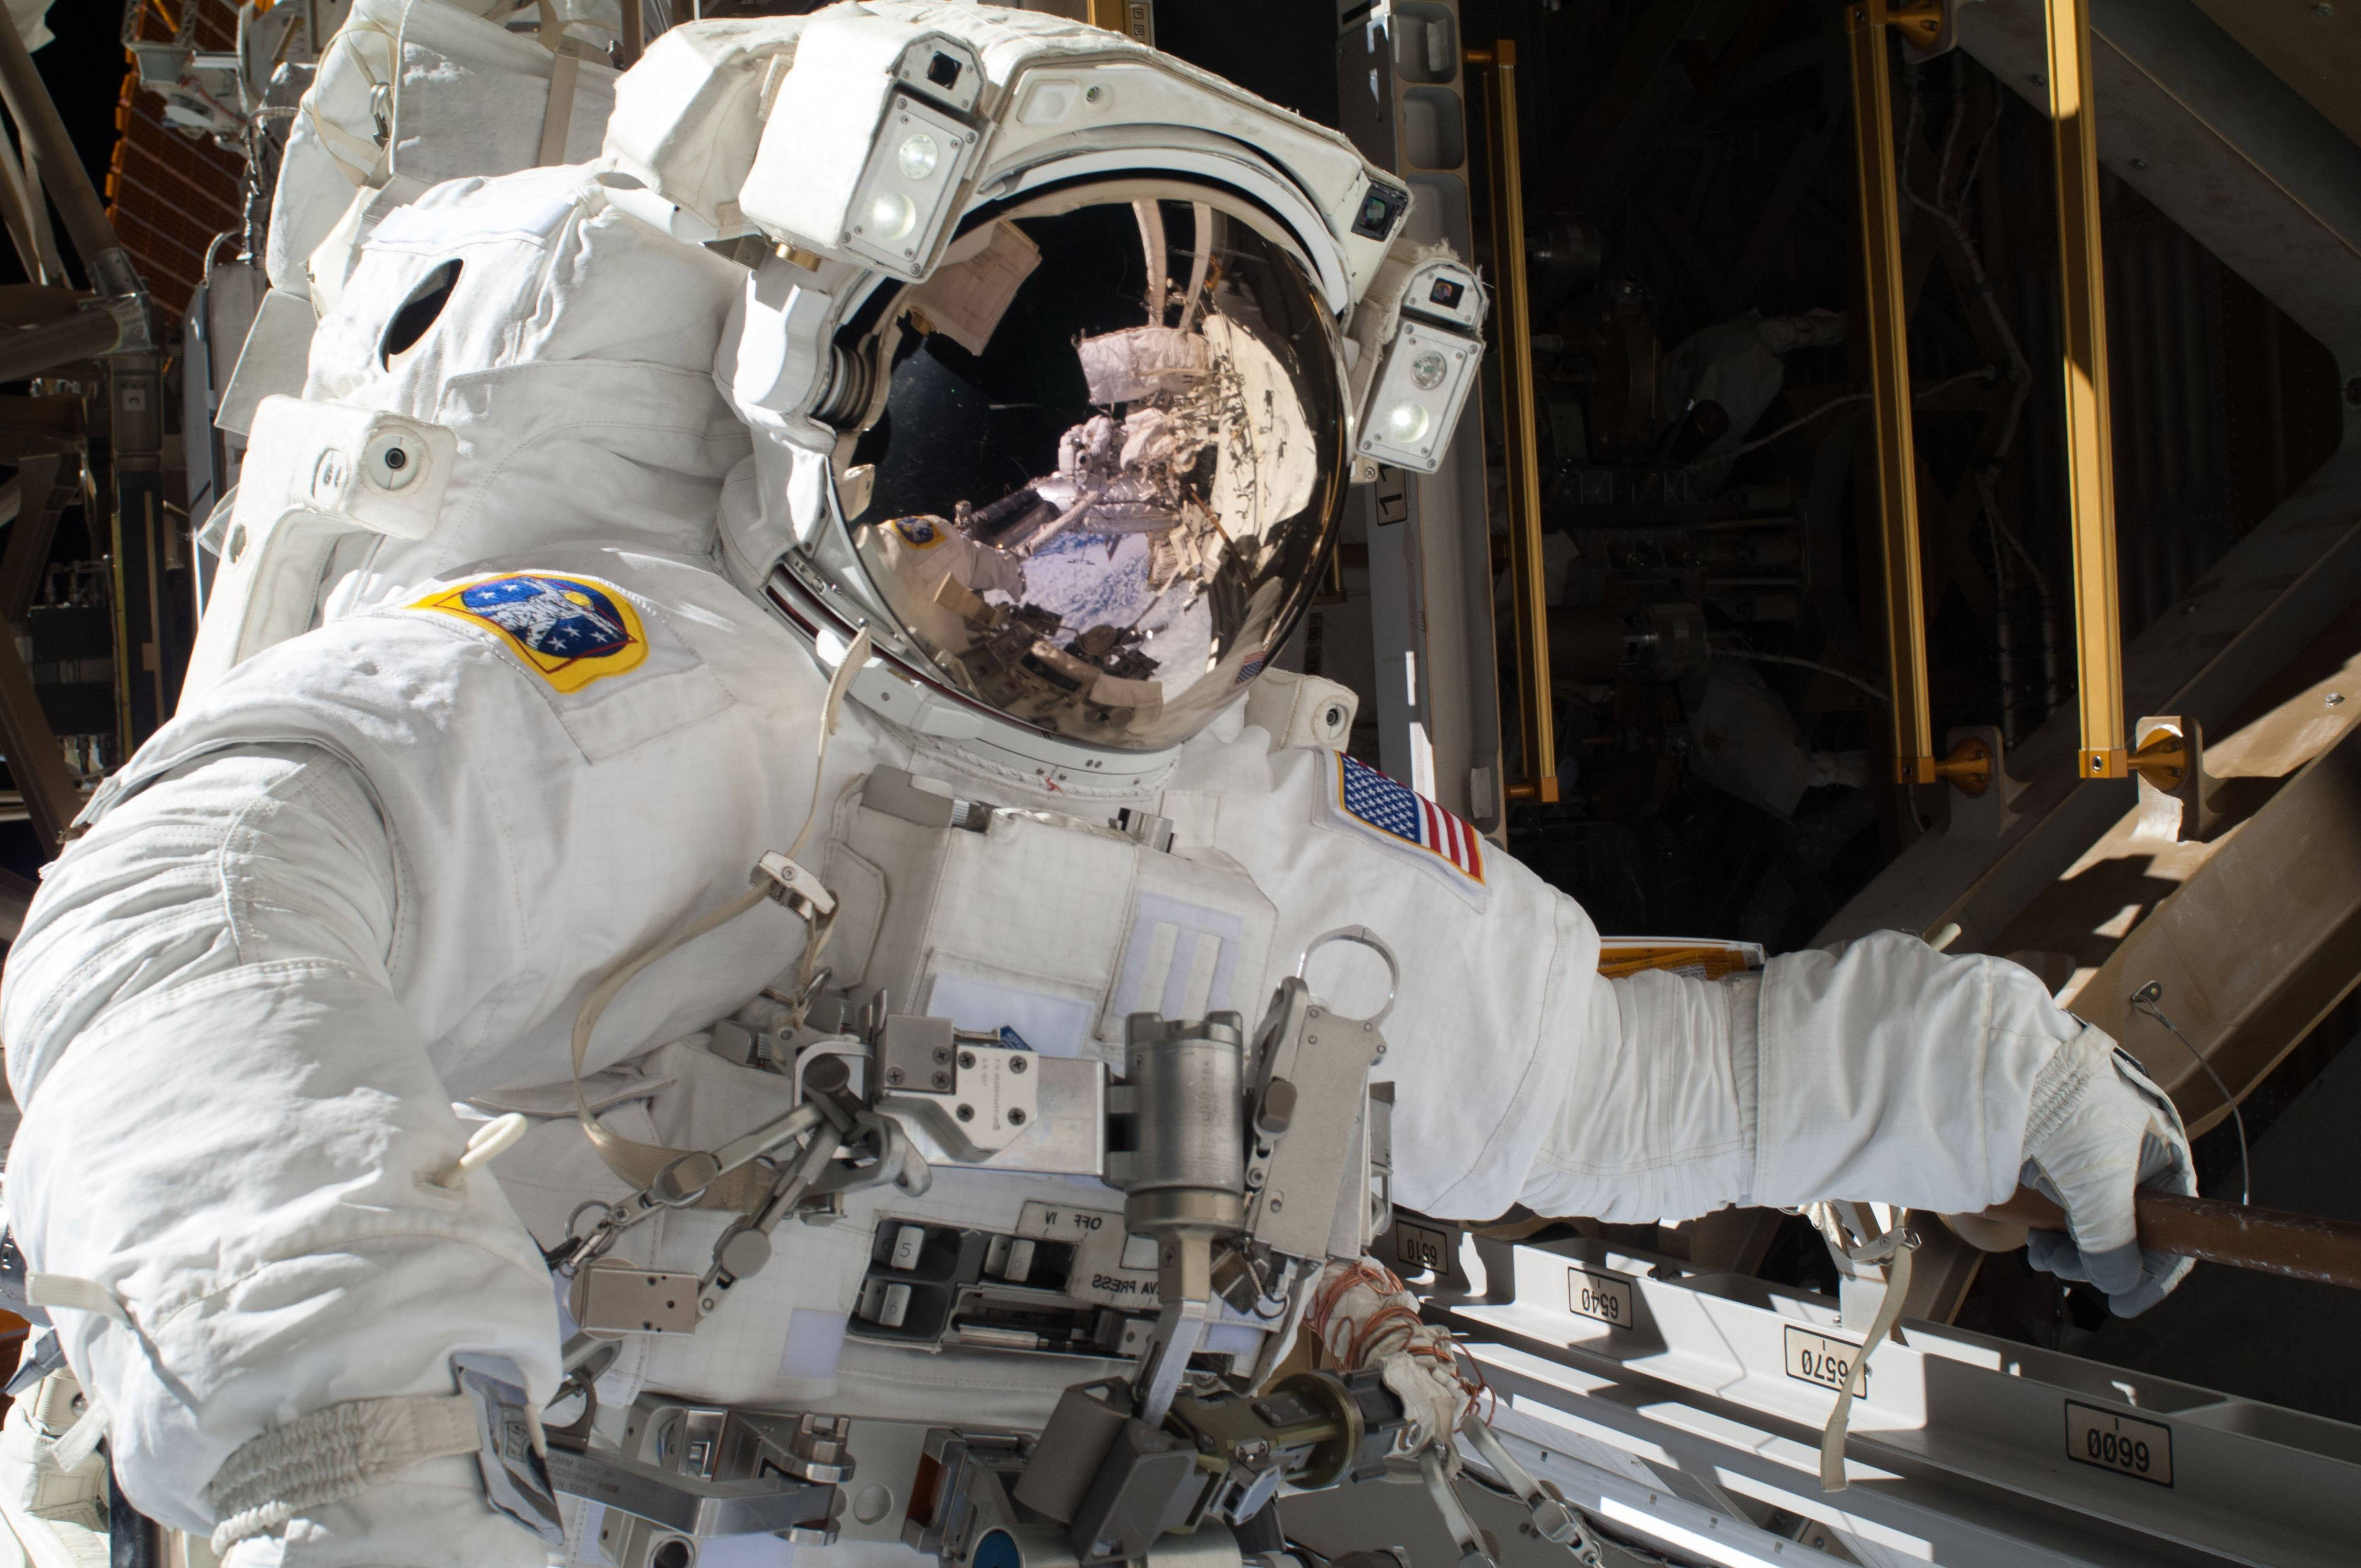 In December, astronaut Michael Hopkins works to repair an external cooling line on the International Space Station on a spacewalk 260 miles above Earth.